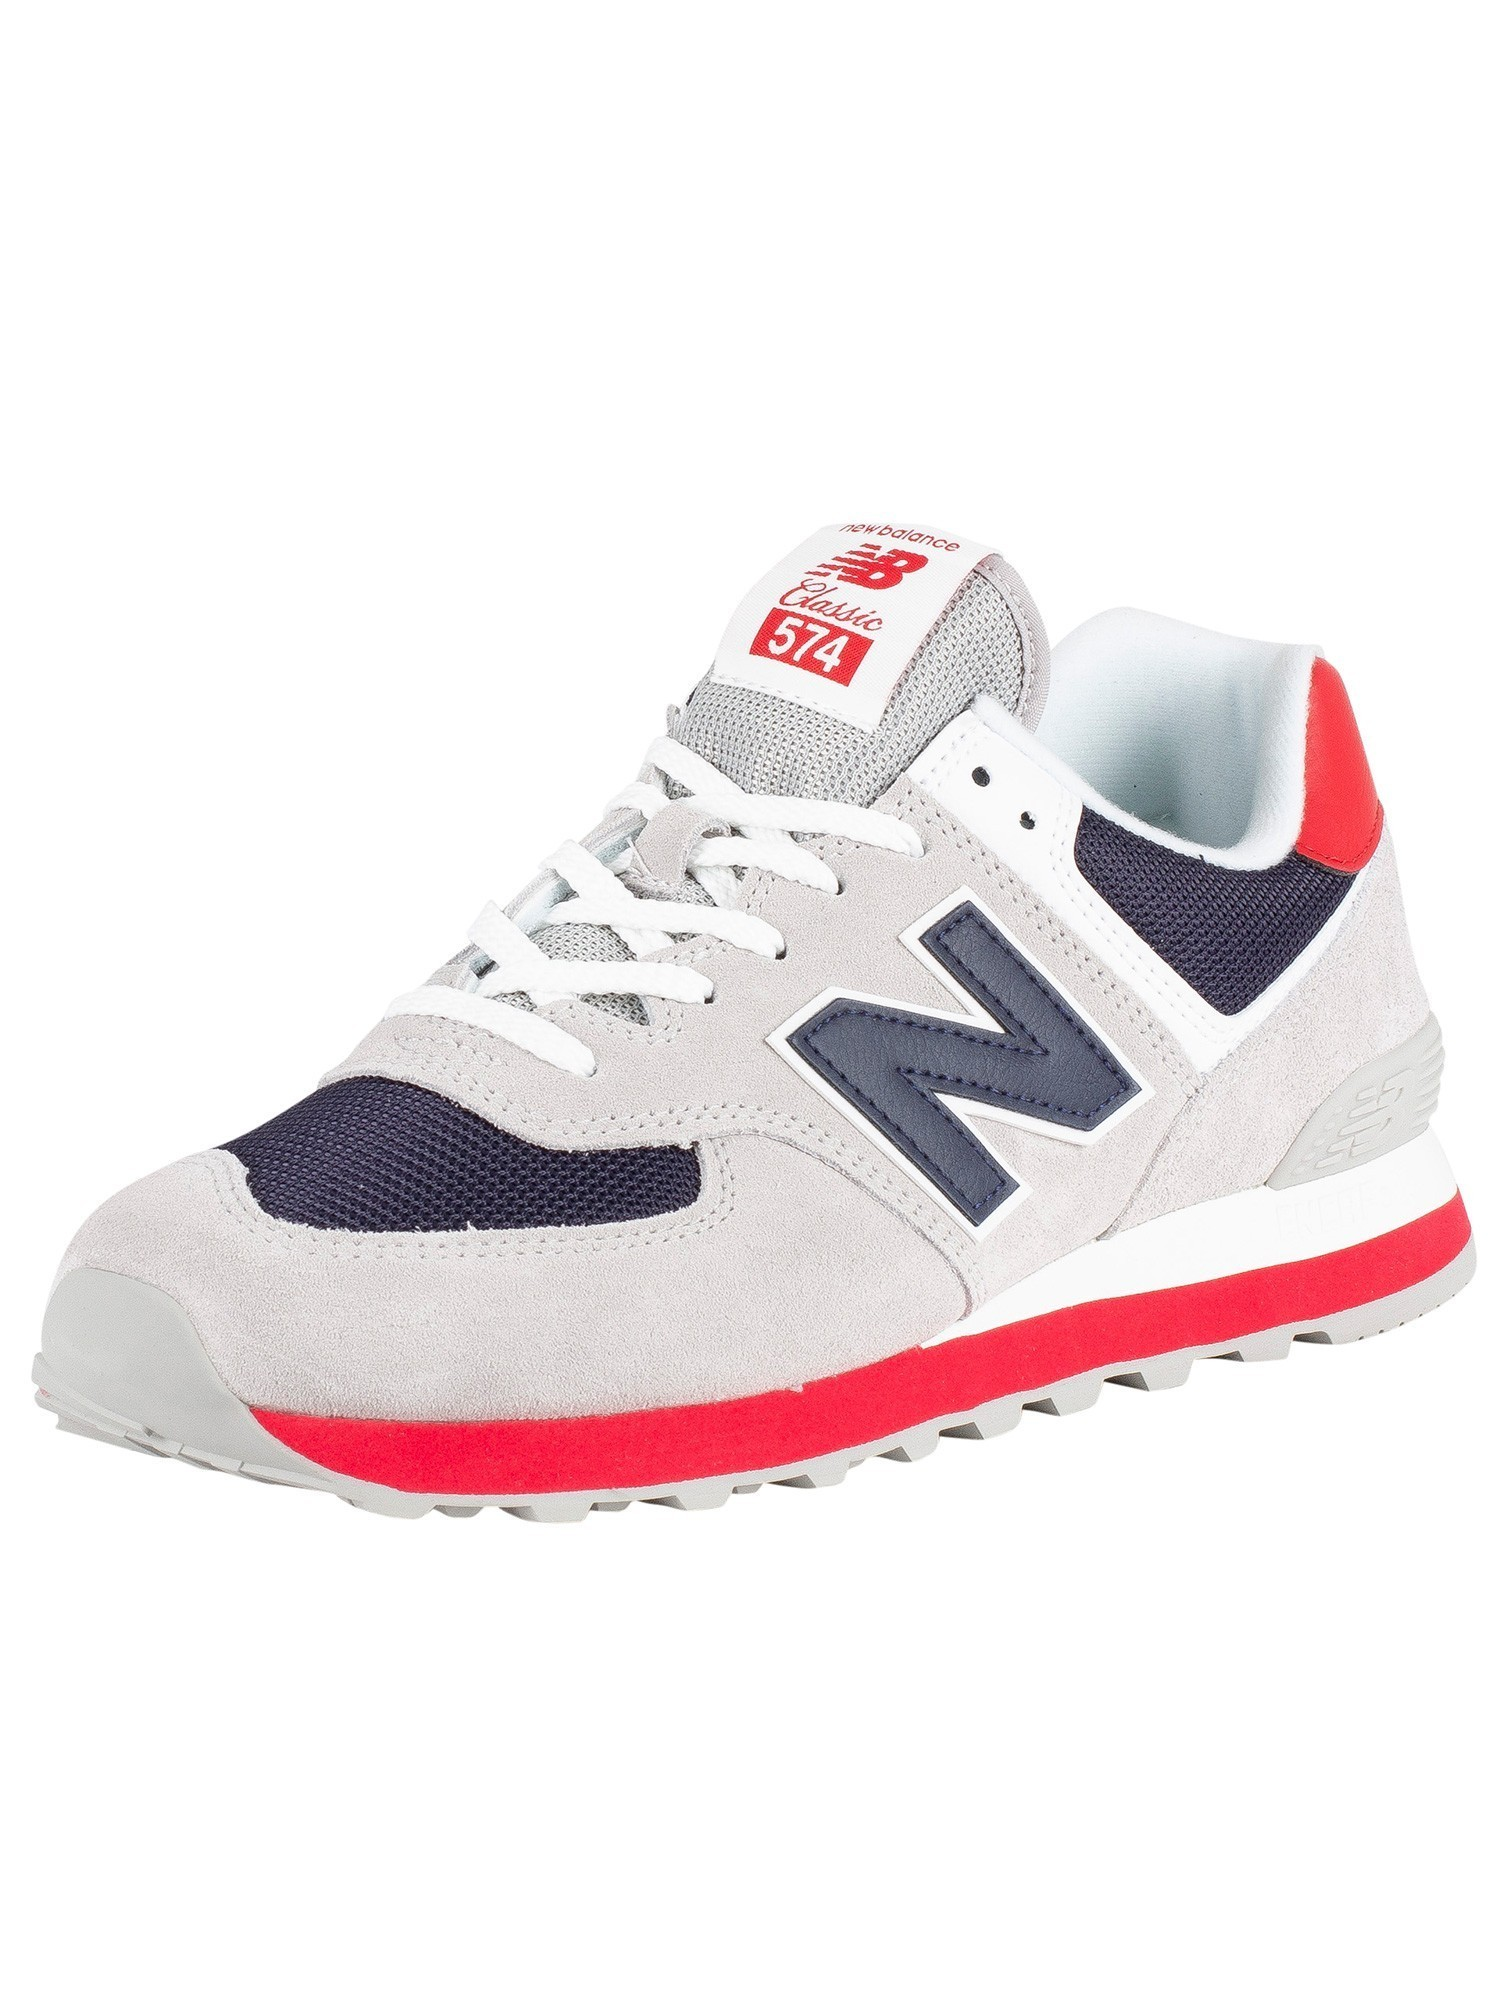 online store 6e9d9 b5eb3 New Balance 574 Suede Trainers - Grey/Navy/Red